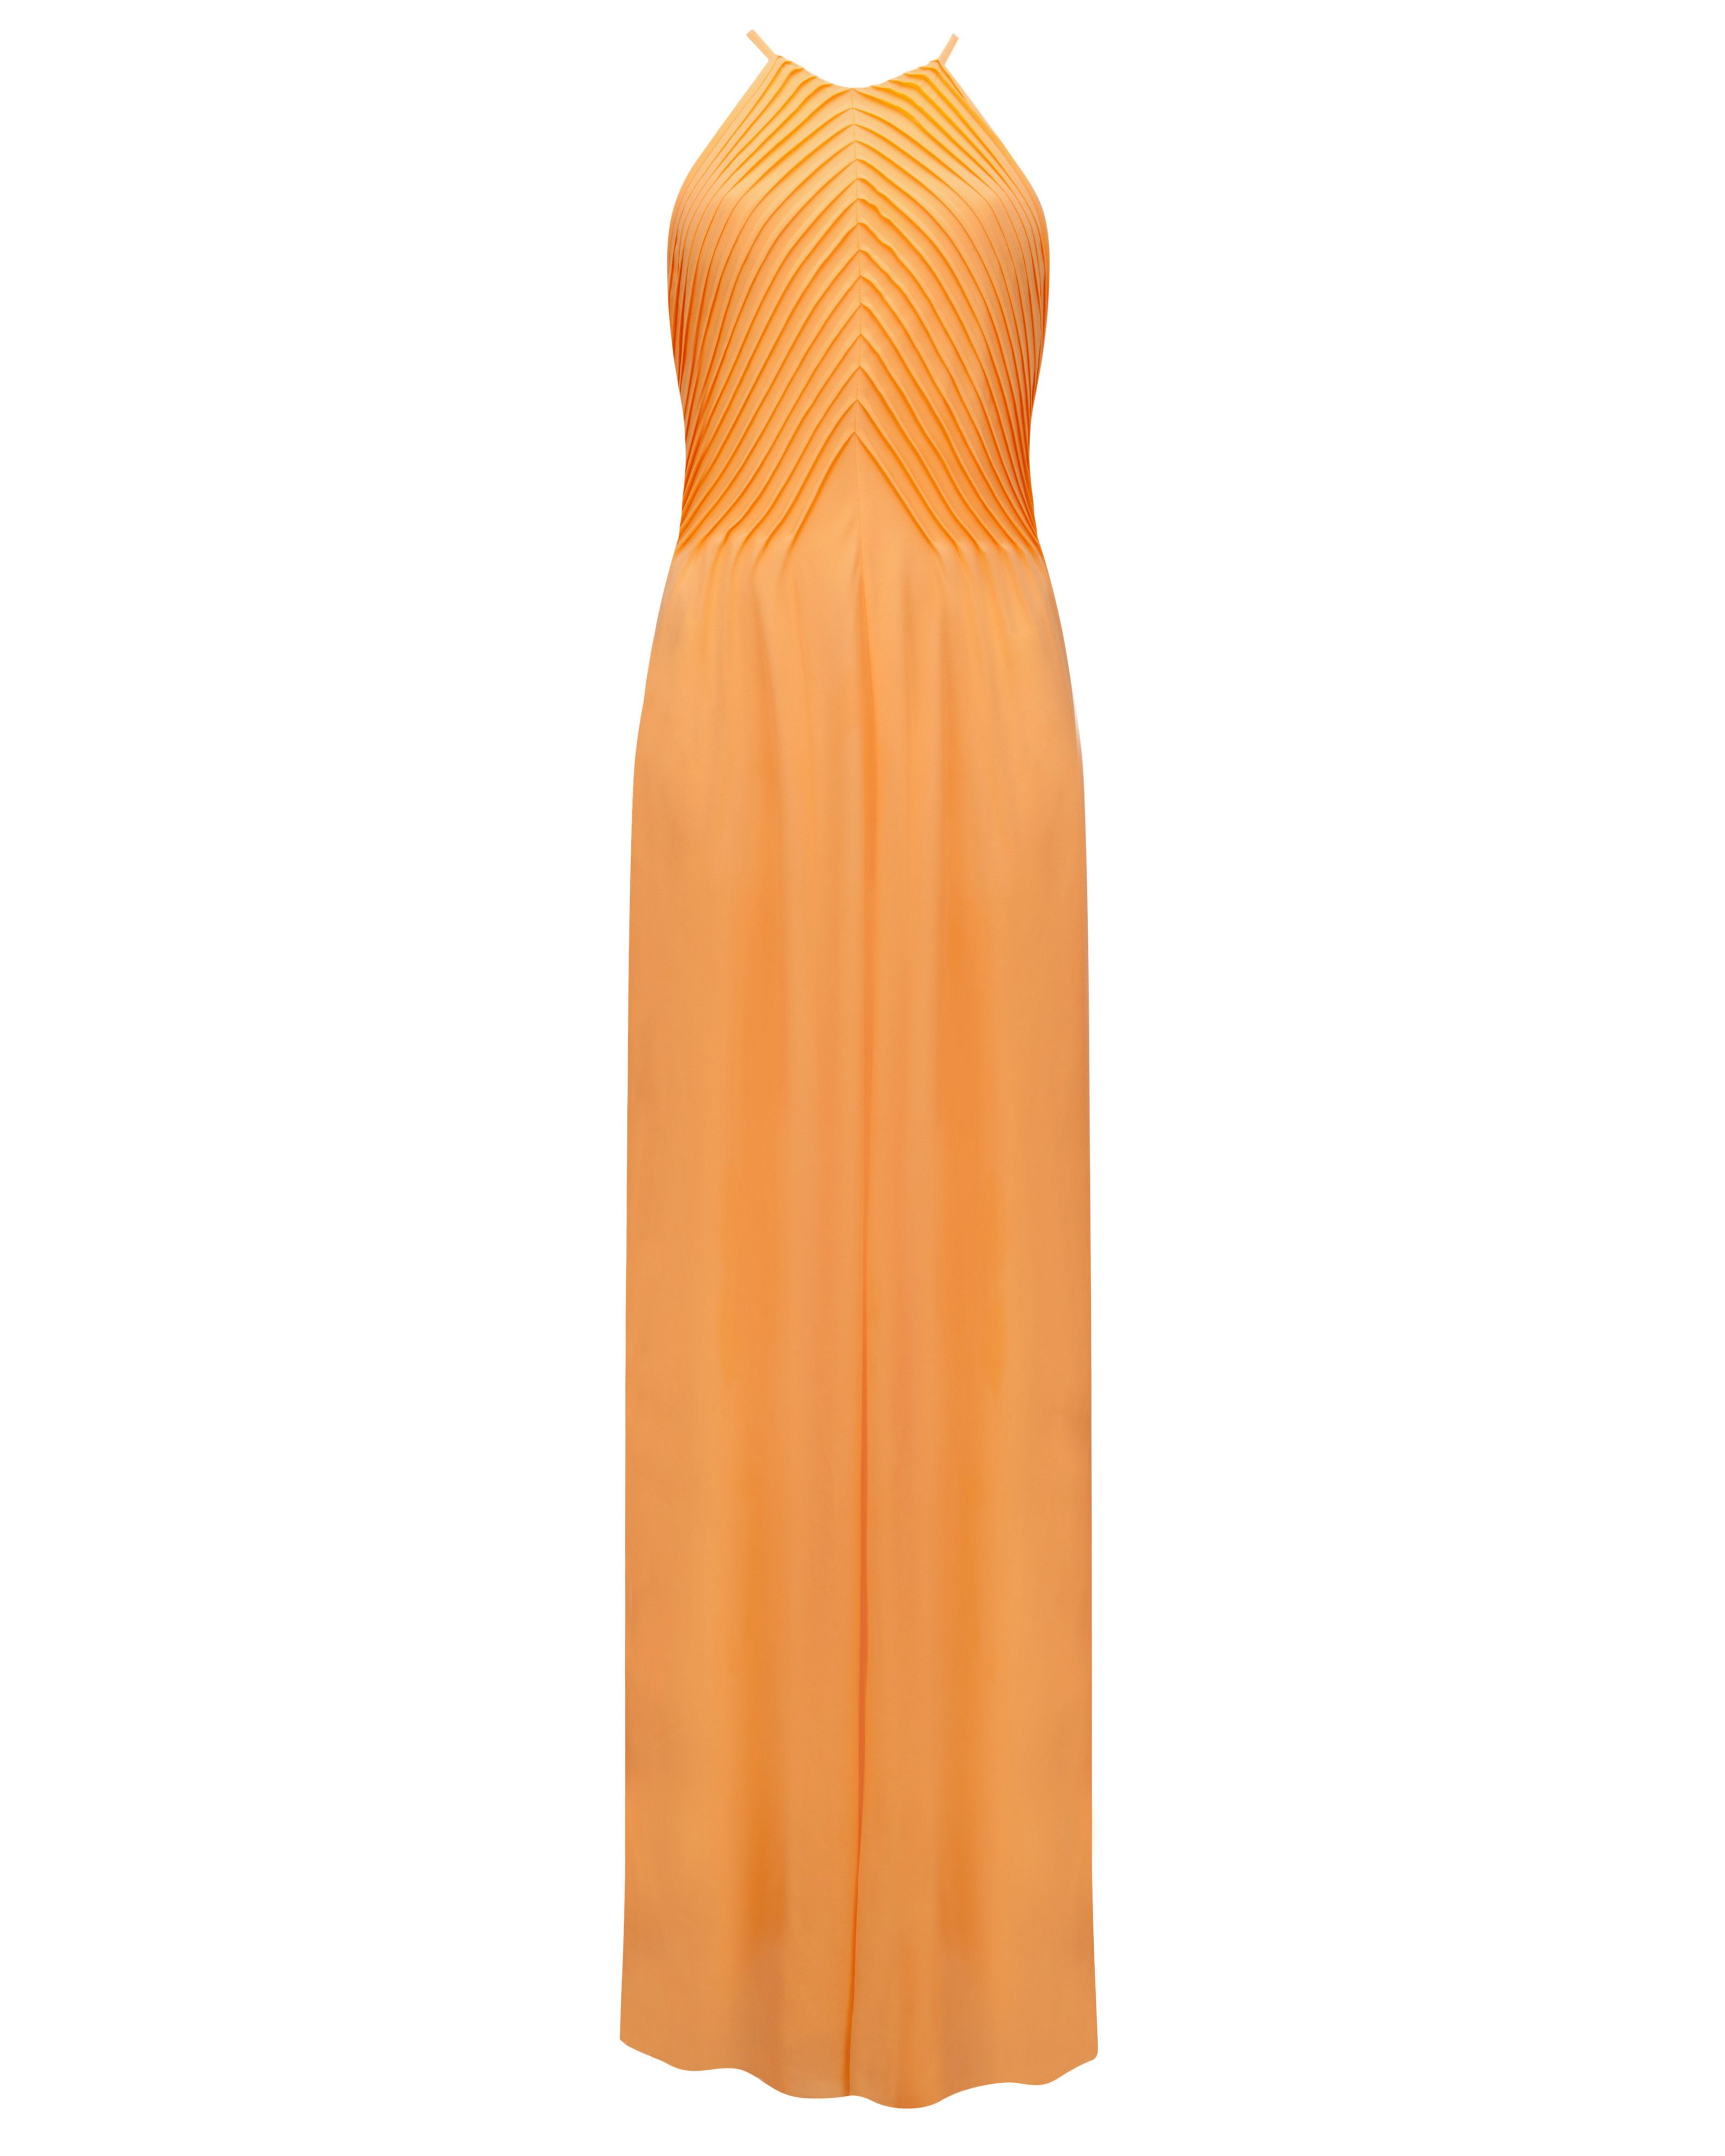 Corkia maxi dress